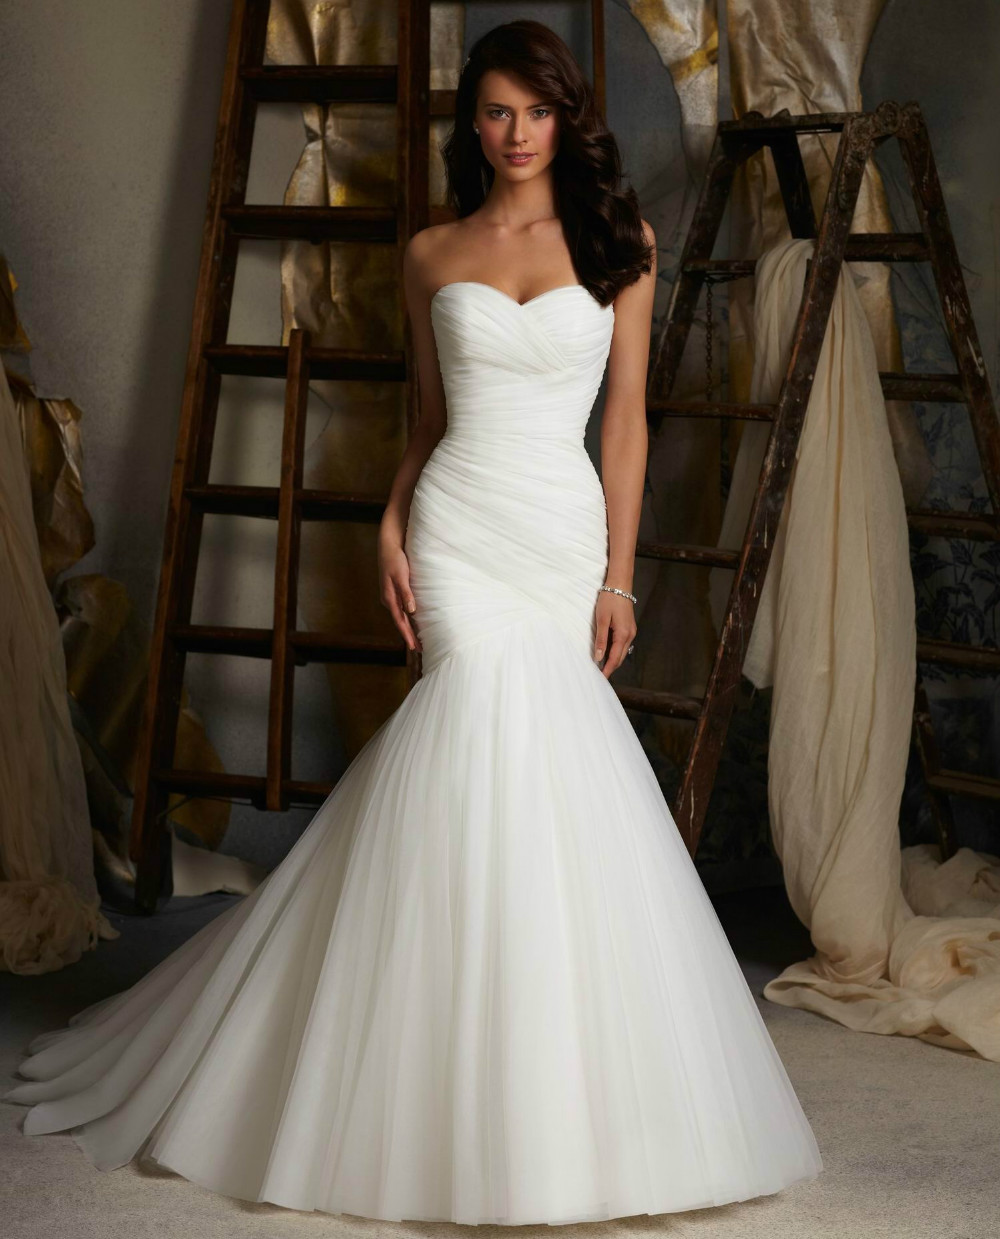 Гаджет  2015 New Design Ruched Strapless Mermaid Tulle Wedding Dresses  White Ivory Tulle Floor length Lace Up Bridal Gowns In Stock None Одежда и аксессуары